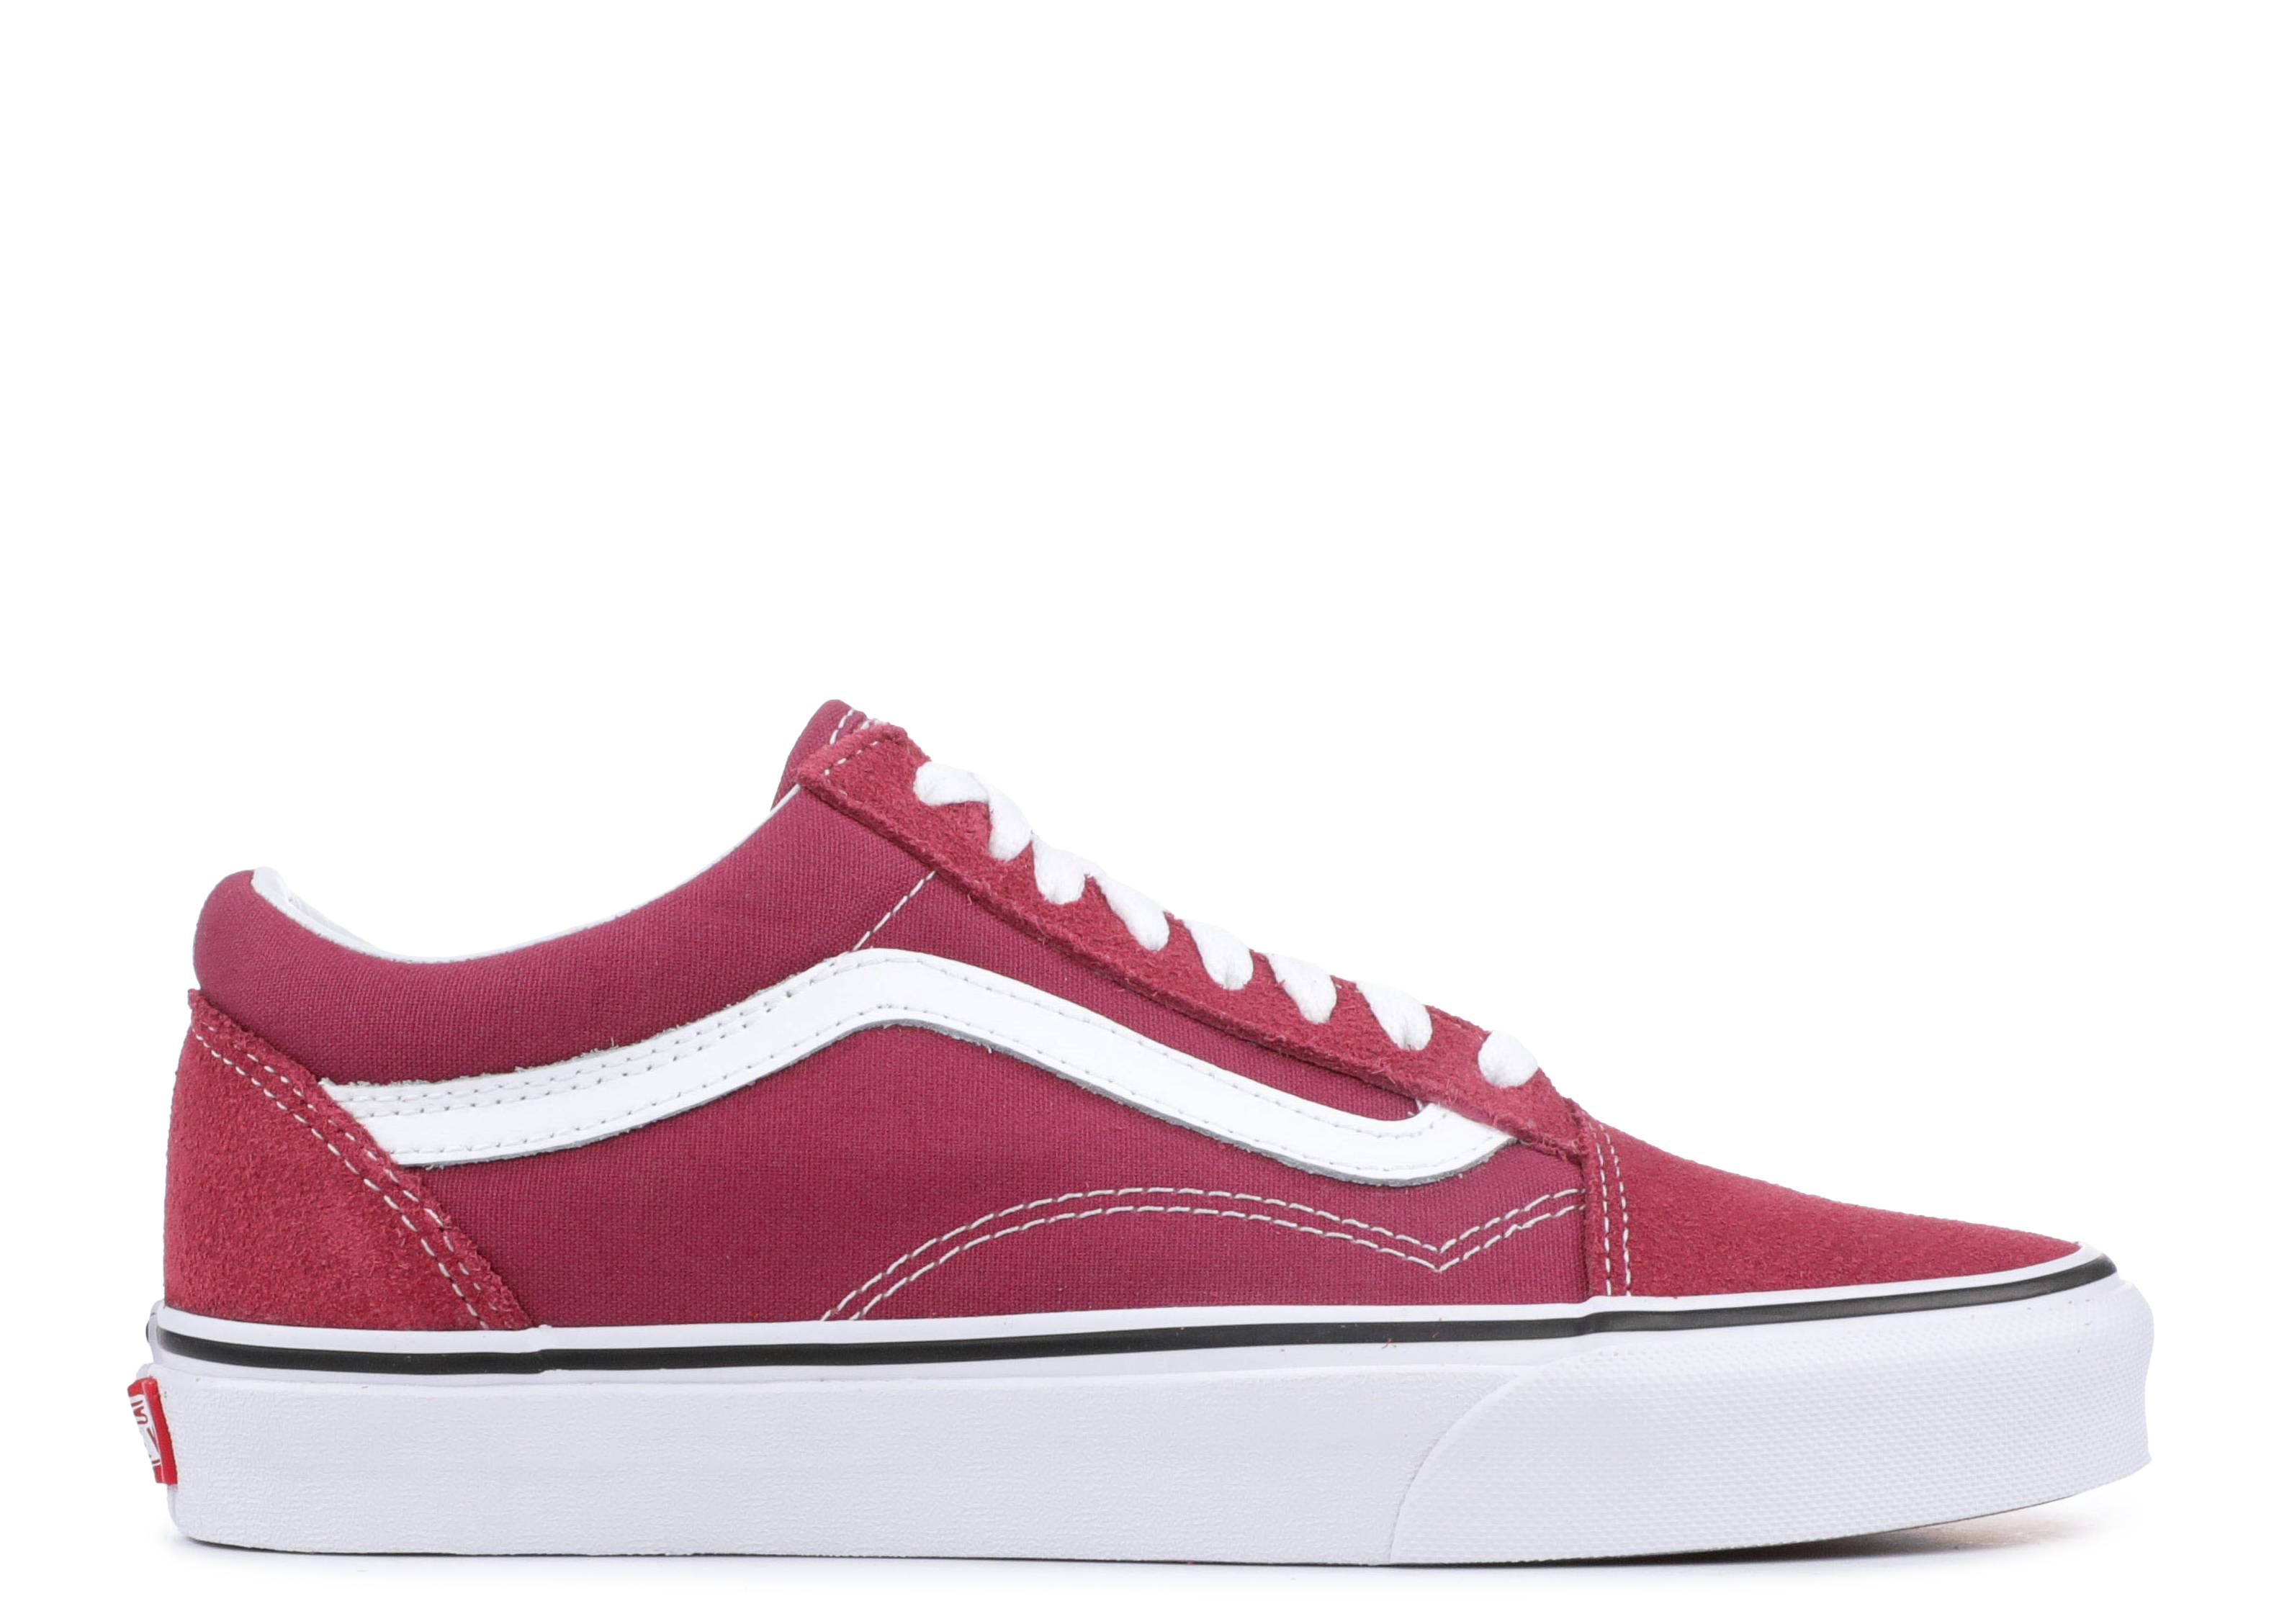 a3e243b716c Old Skool - Vans - VN0A38G1U64 - dry rose true white